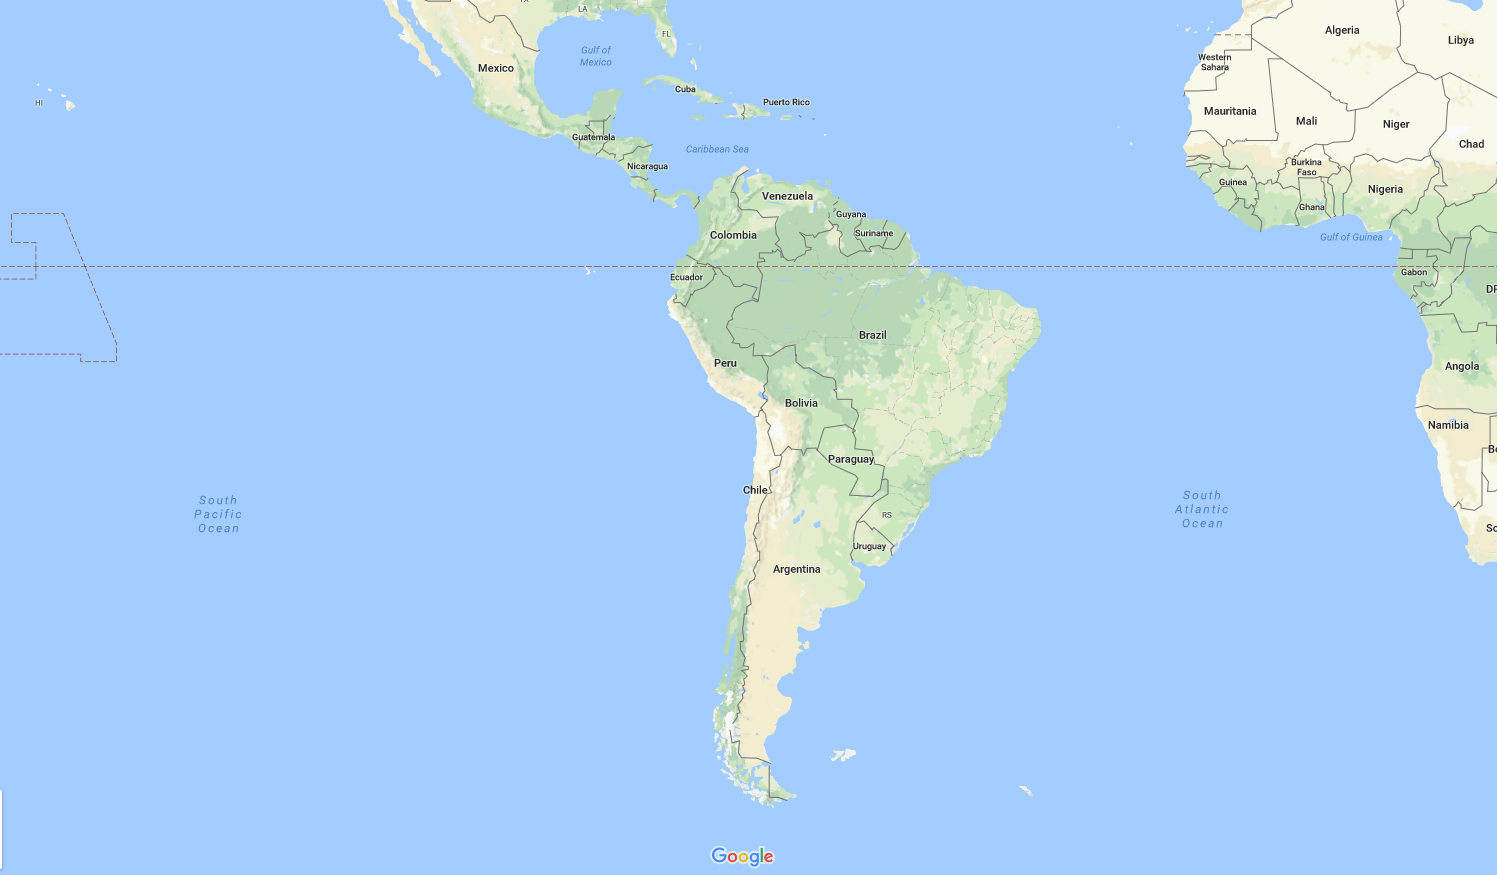 Latin-America-google-map Map Of America Latina on central latin america middle, latin america language, latin america temperature map, latin map, linguistic map of latin america, un in america property map, map of united states and south america, latin america physical map, map of united states and central america, map of europe, south america map with capitals, middle america countries and capitals, map of africa, map of latin american countries, latin america political map, latin america in french, spoken latin america language map, map countries that speak french, map of asia, languages spoken in latin america, montessori maps of central america, map of afghanistan, latin america climate map, map of mexico, latin america housing, central america map with capitals, map of middle east, us map with states and capitals, central america map, the size of latin america,